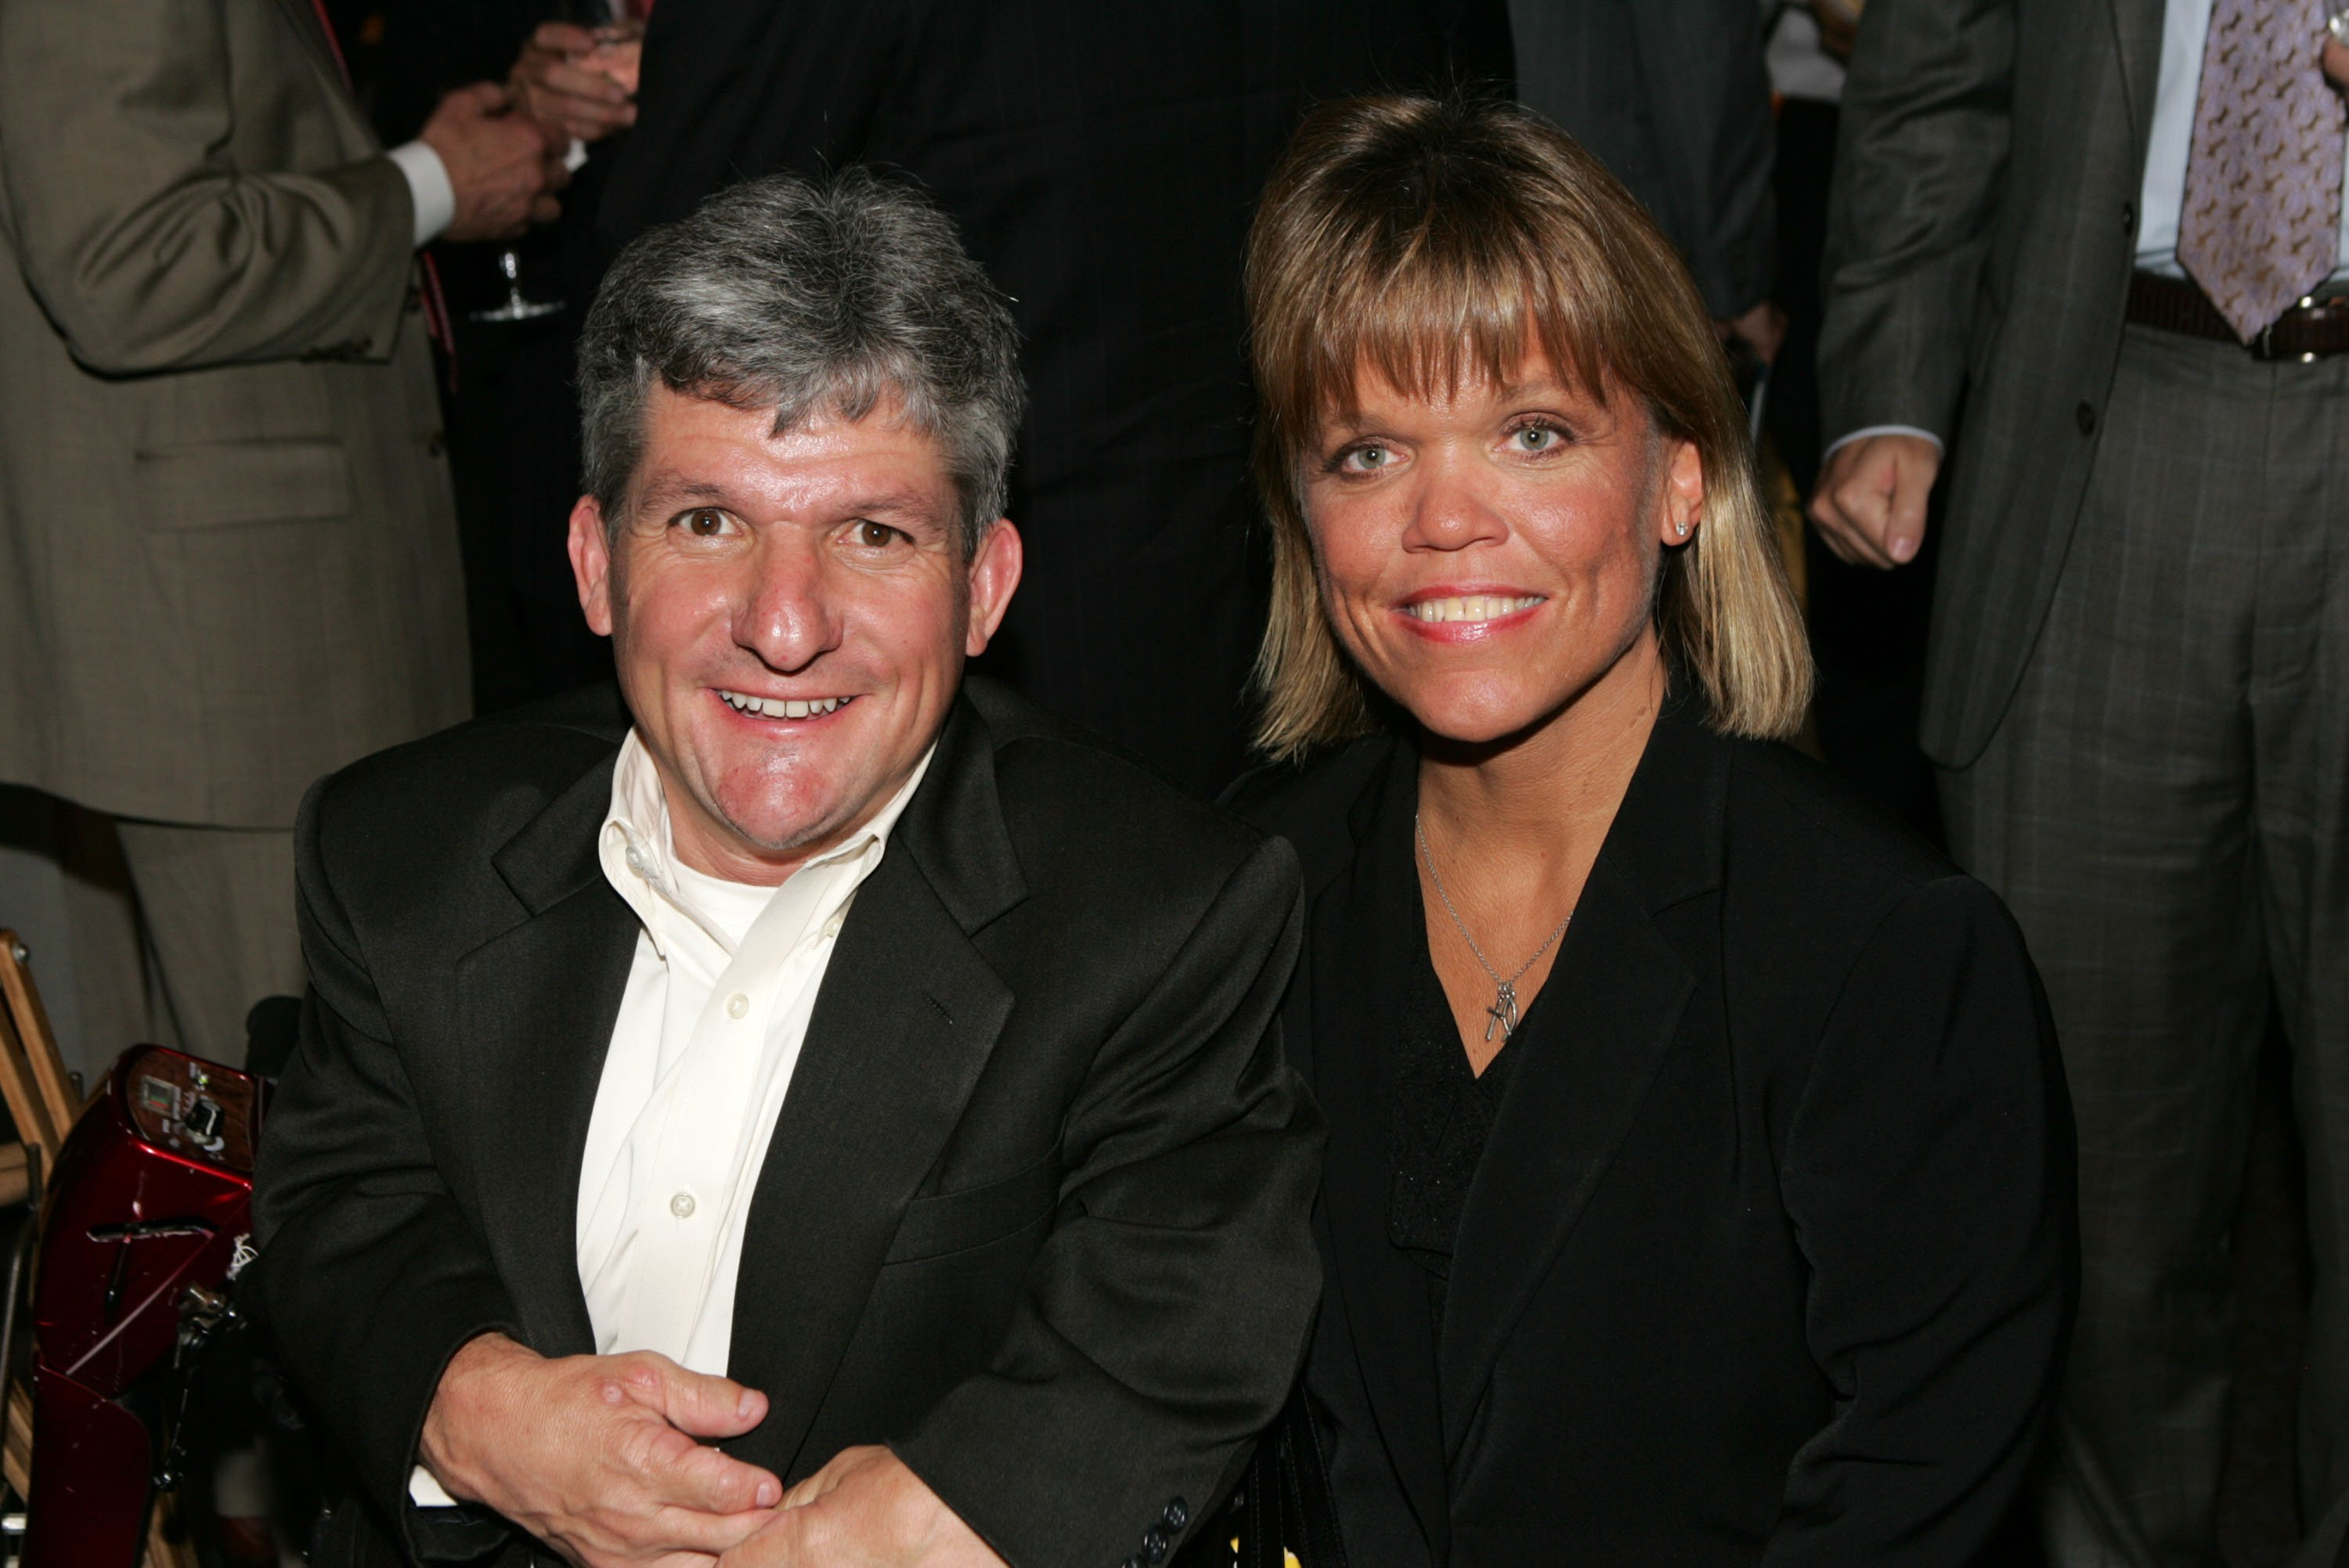 Matthew Roloff and Amy Roloff speak at the Discovery Upfront event at Jazz at Lincoln Center on April 23, 2008 in New York City | Photo: Getty Images